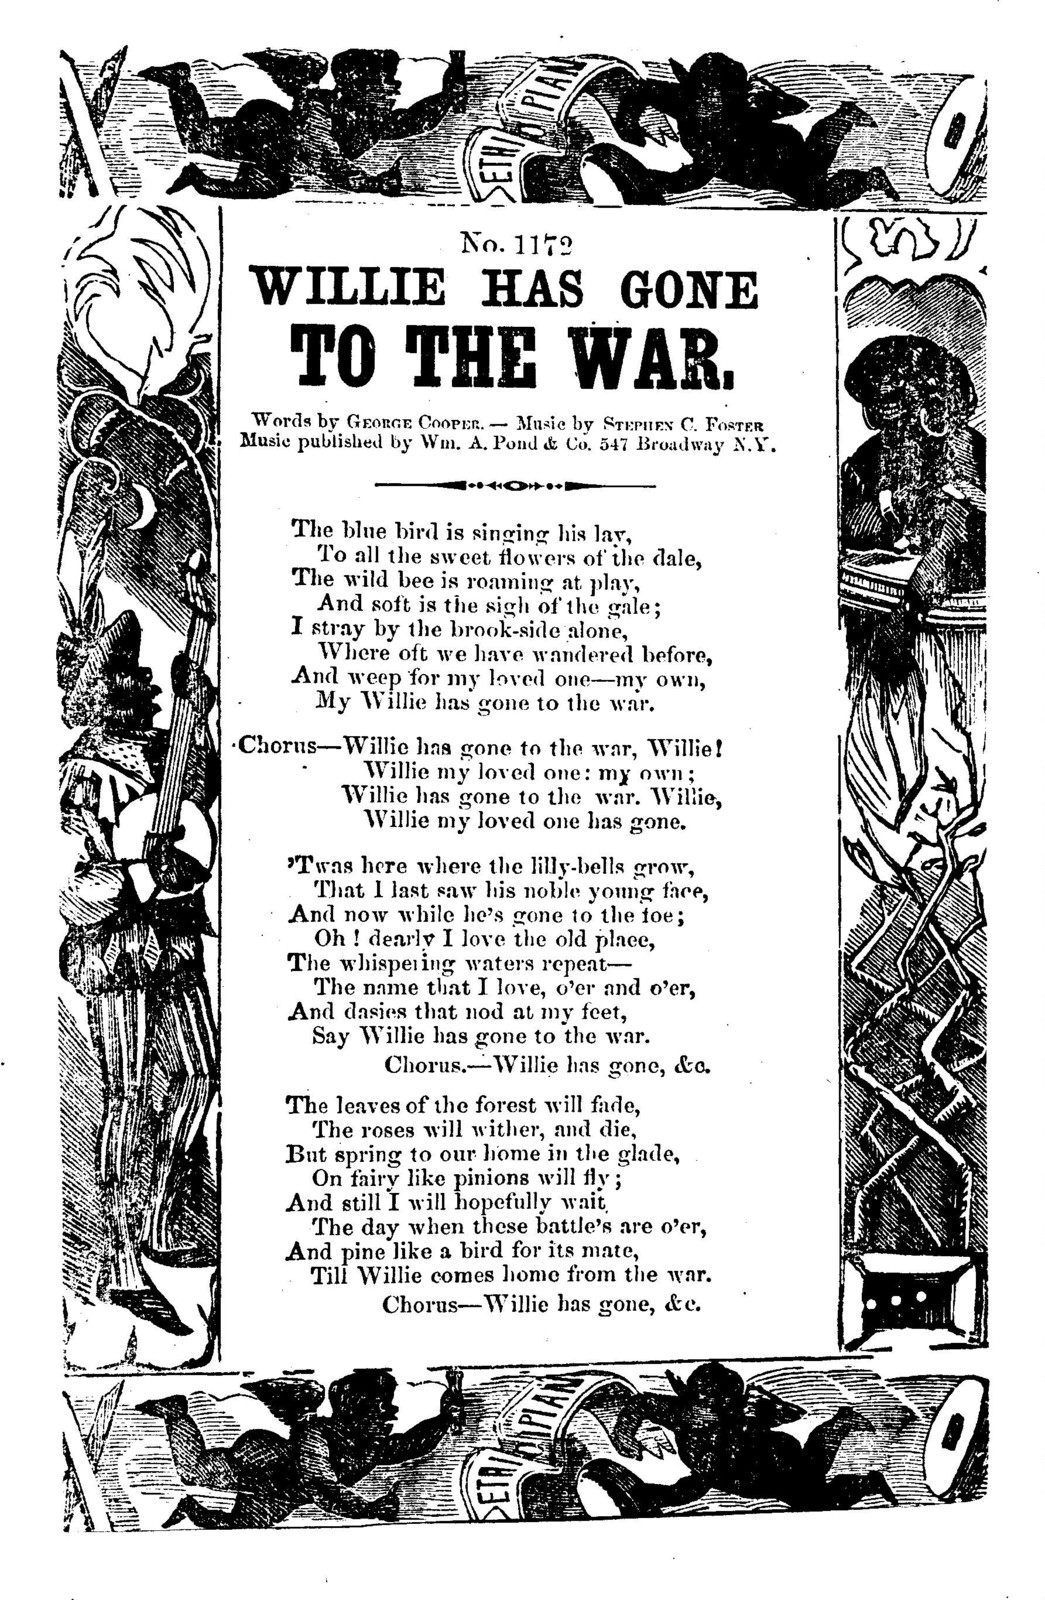 Willie has gone to the war. Words by George Cooper, music by Stephen C. Foster